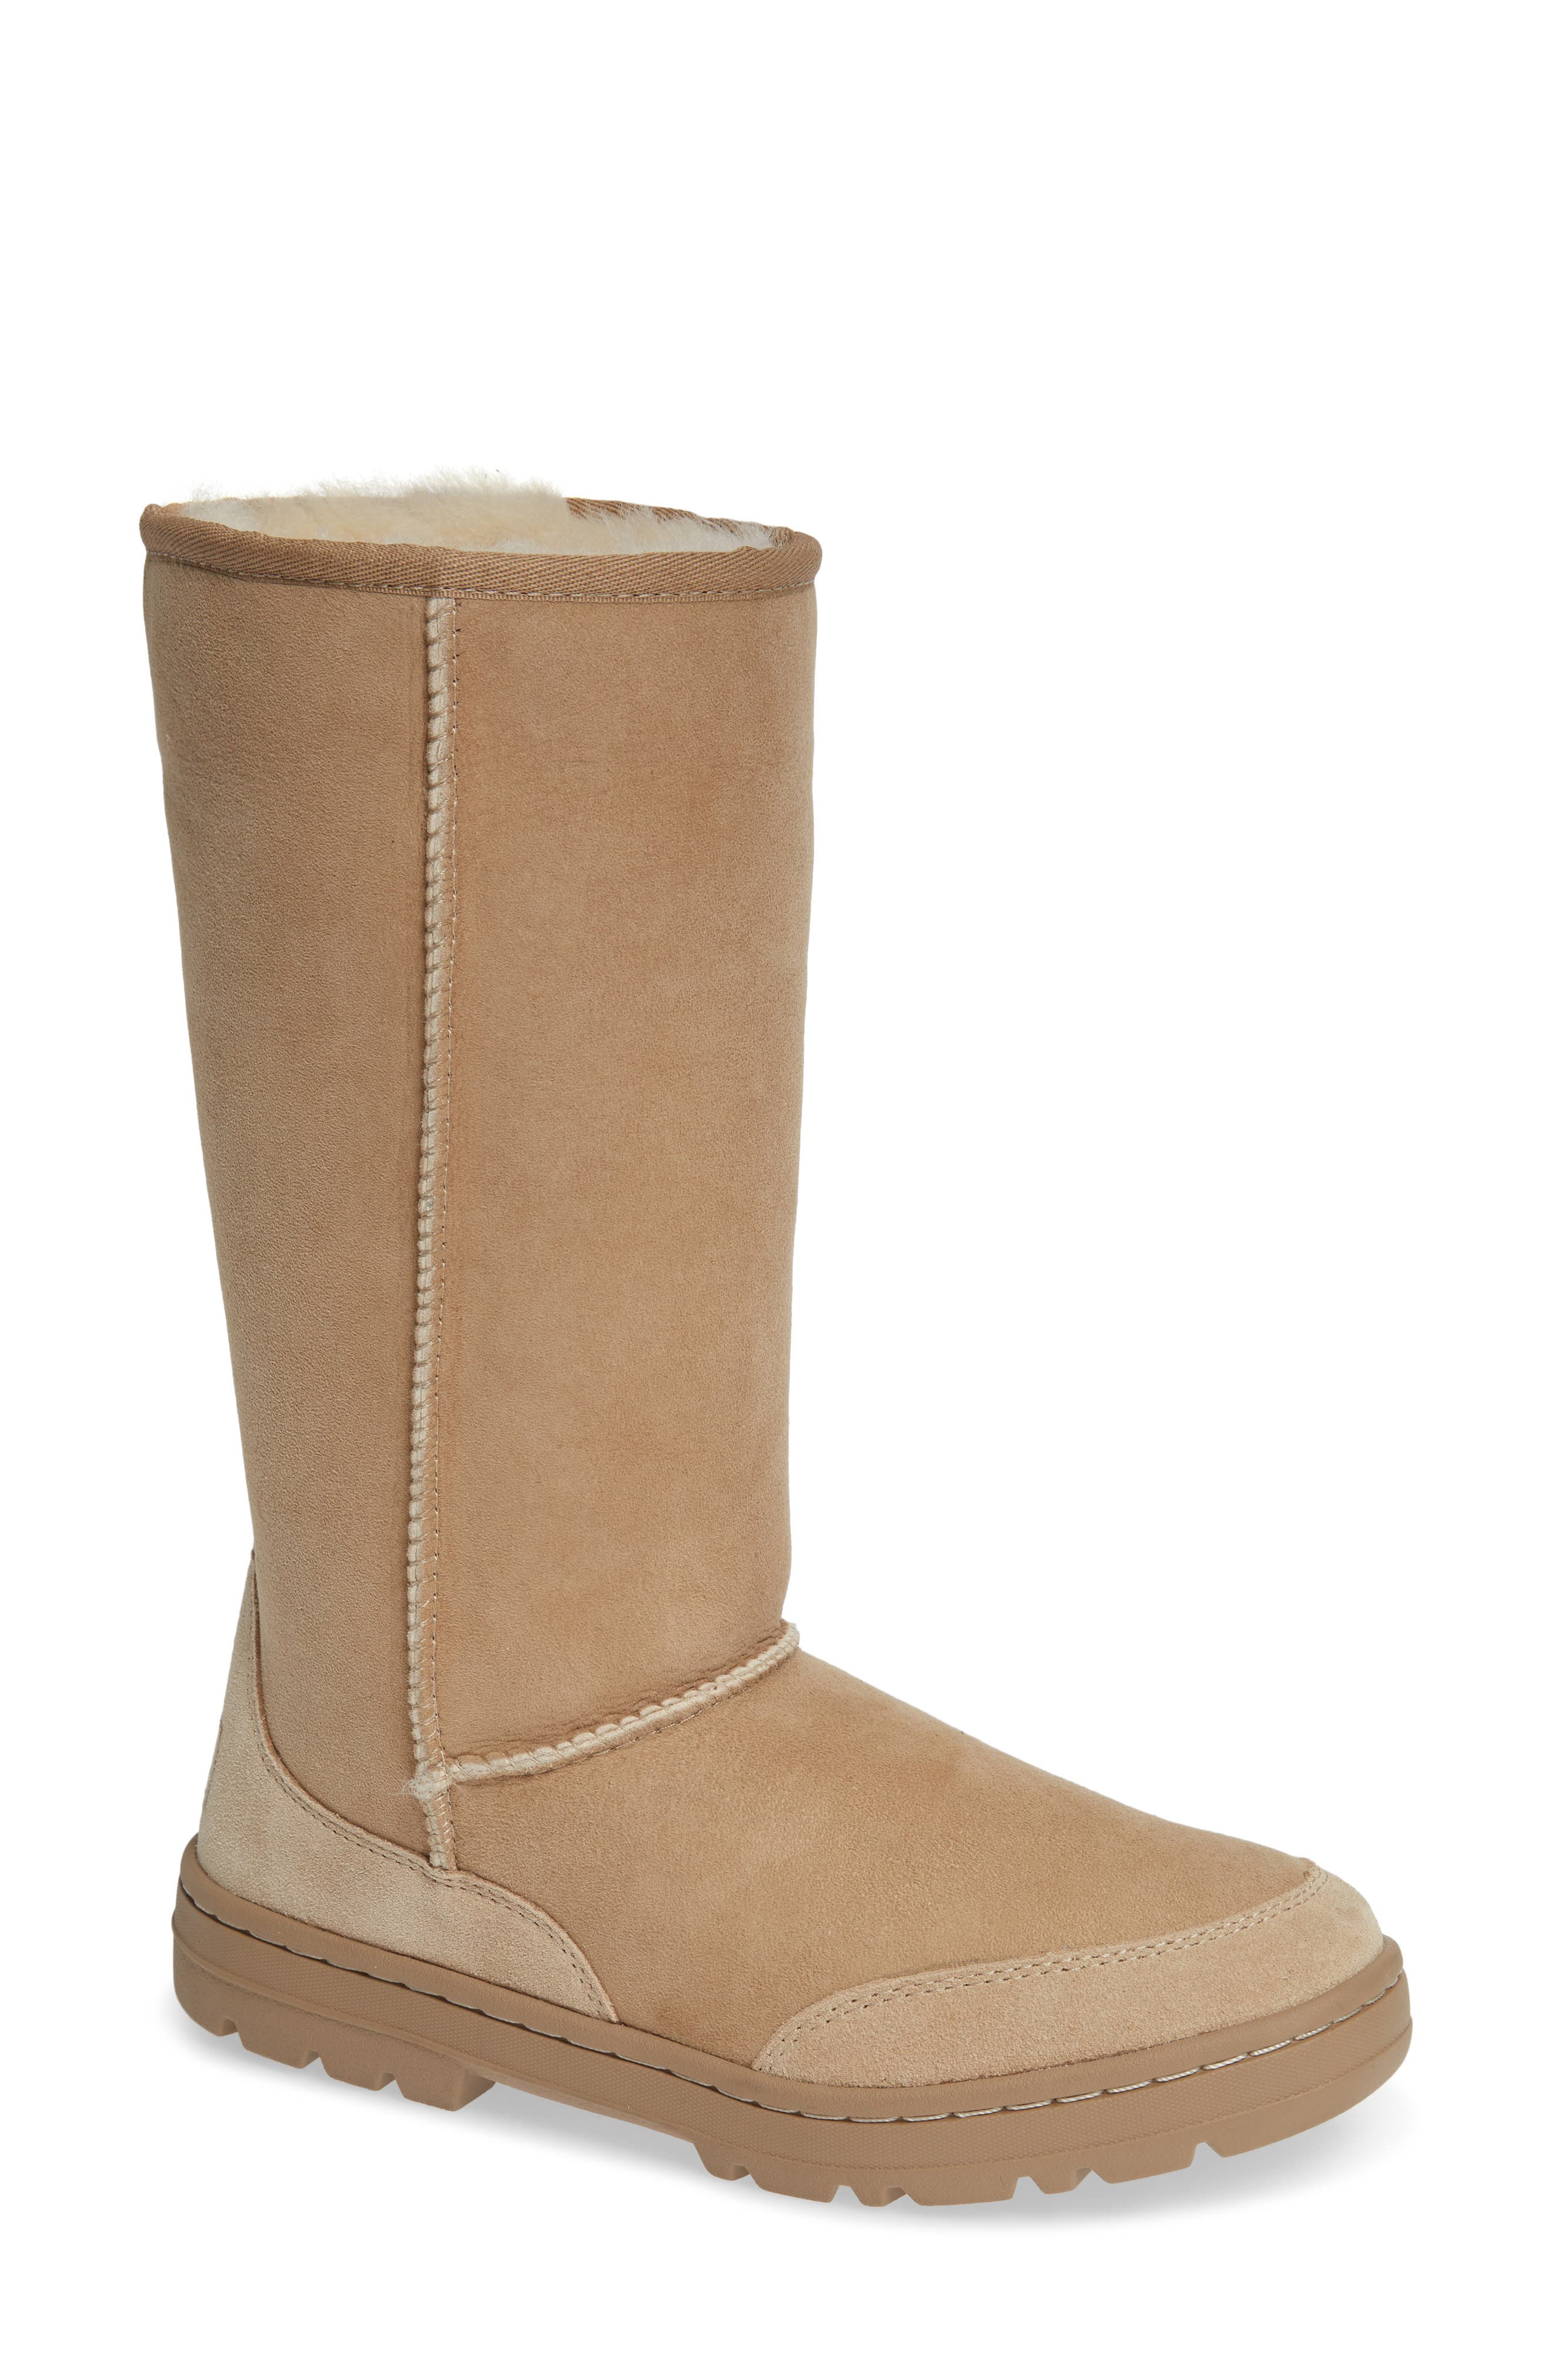 Ugg Ultra Revival Genuine Shearling Tall Boot in Sand